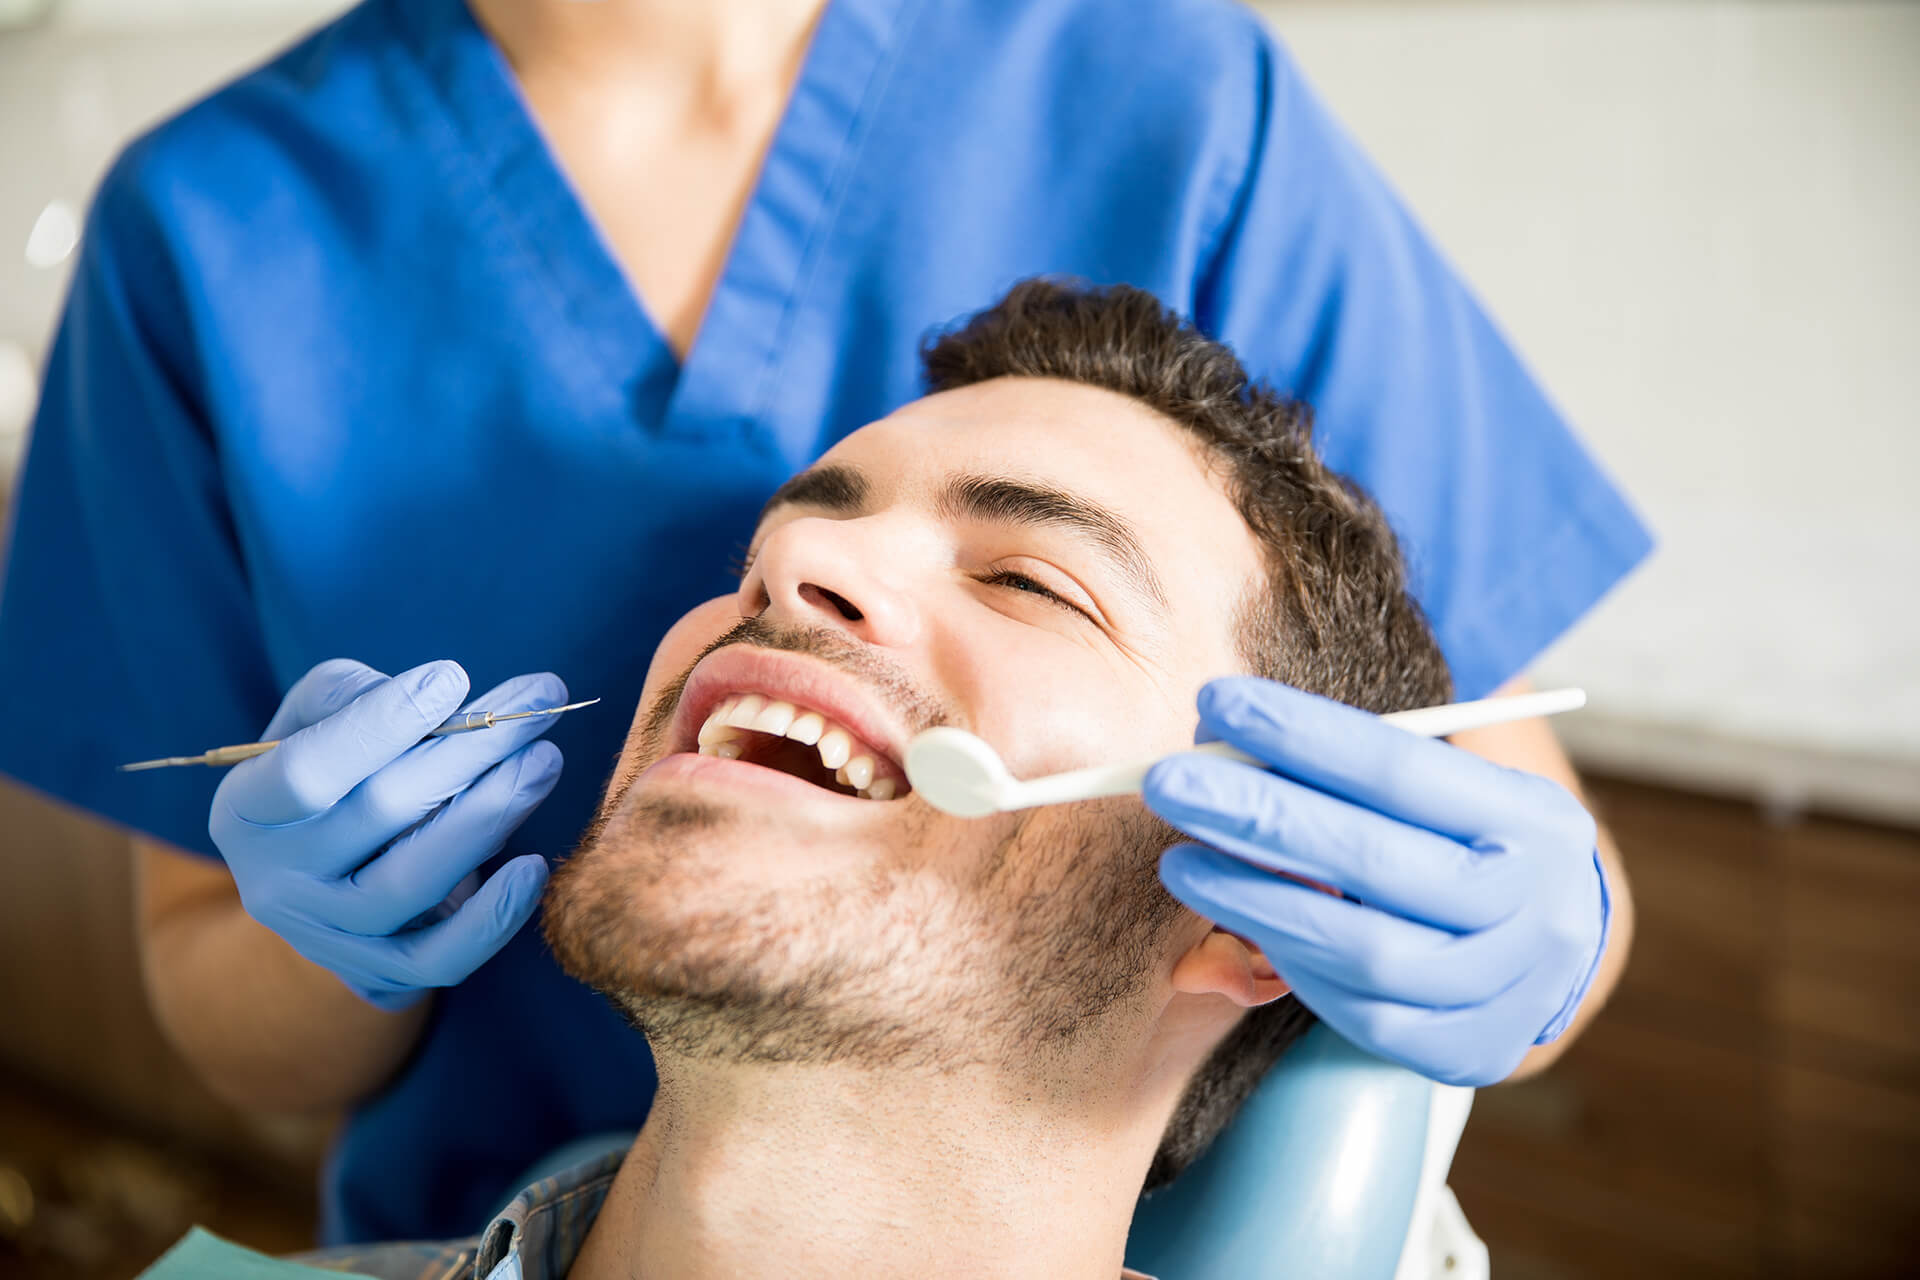 dental cleaning and exams